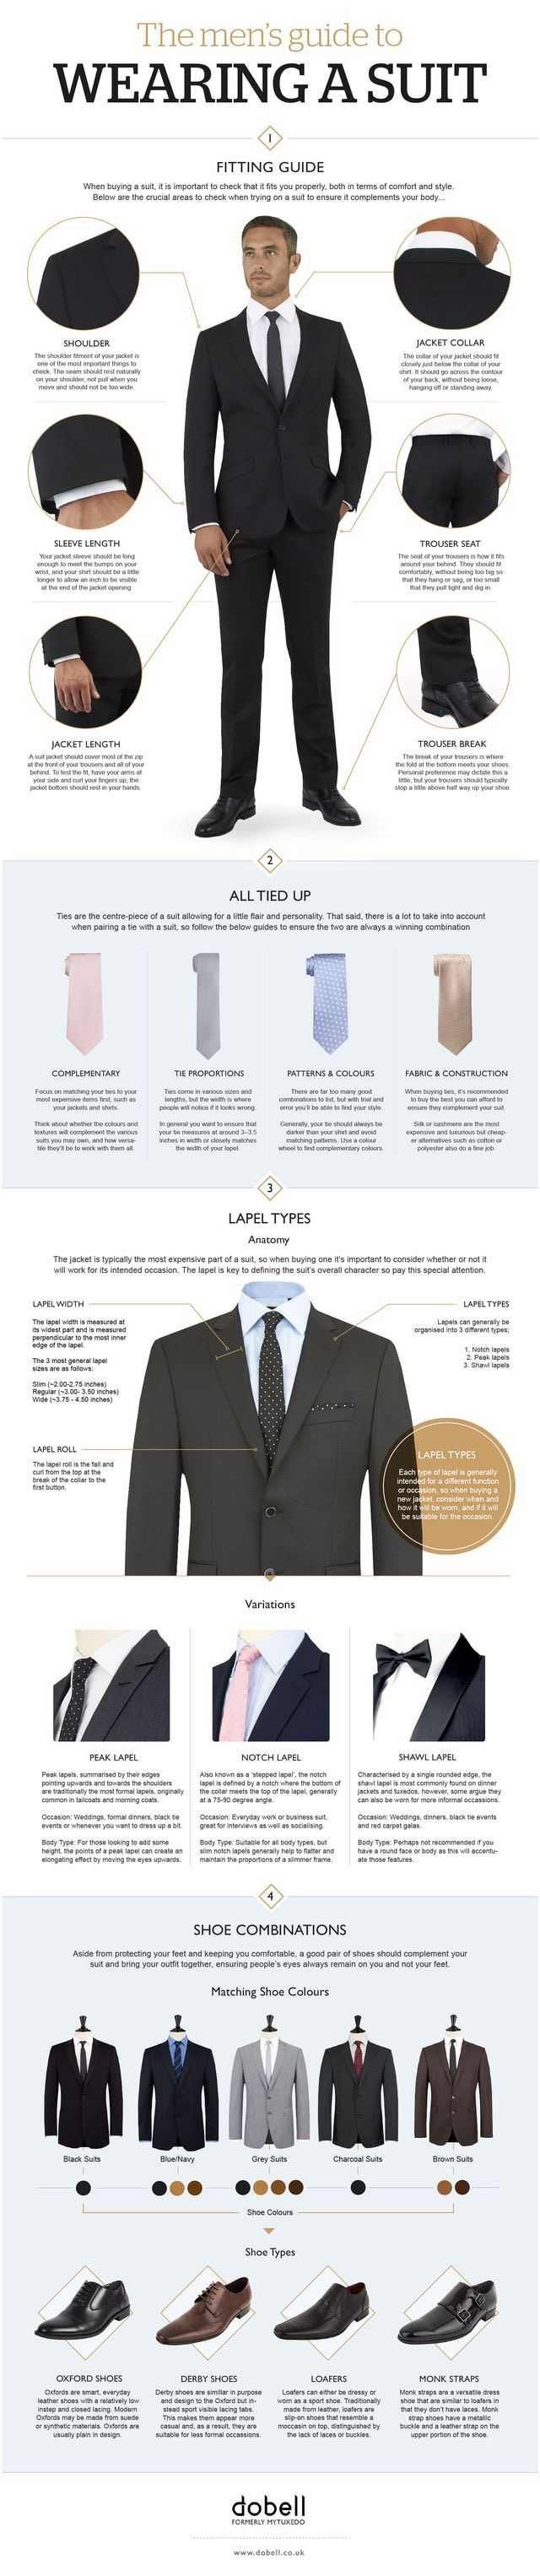 Men fashion advices - Imgur #fashionadvice